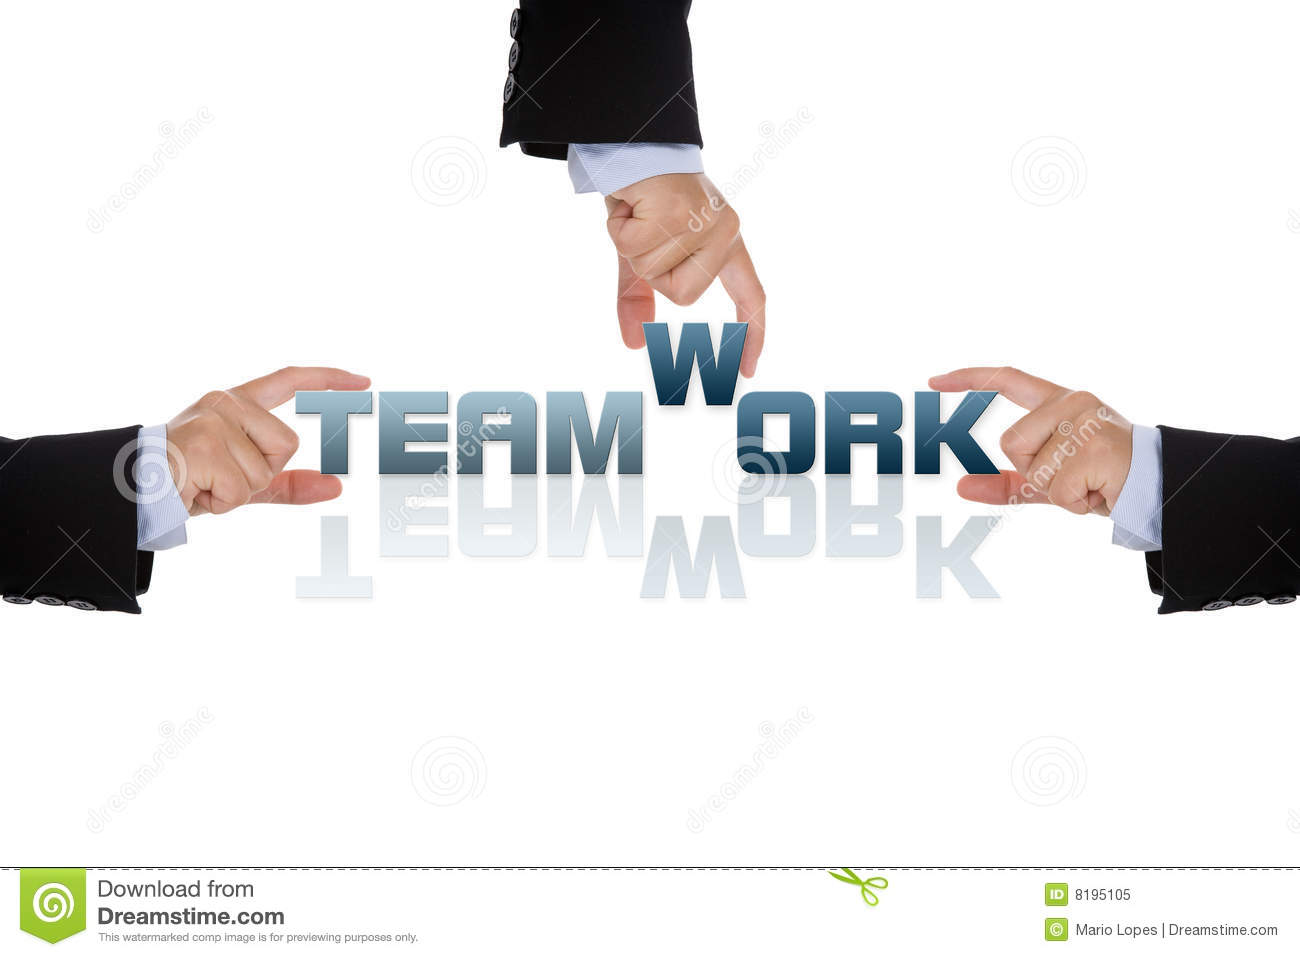 team work in business In addition to providing team members with experience, benefits of teamwork include increased efficiency, financial savings, innovation and morale improved morale teamwork allows employees to take greater responsibility for decision making and also allows team members to control more of the work process.